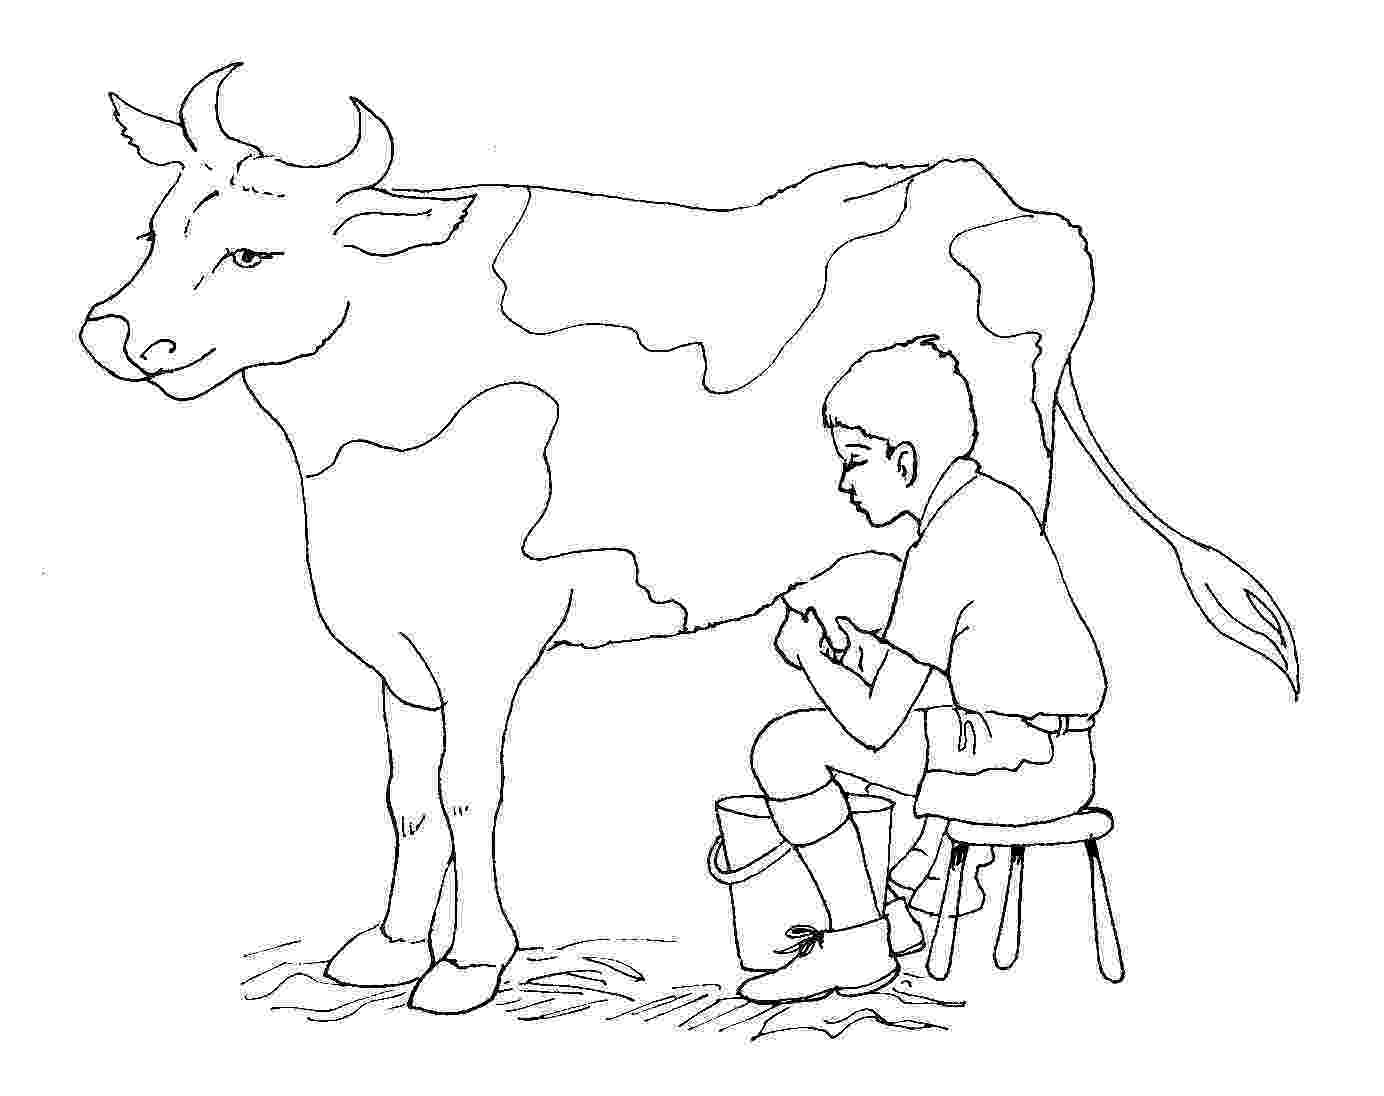 cow coloring pages cute cow animal coloring books for kids drawing pages cow coloring